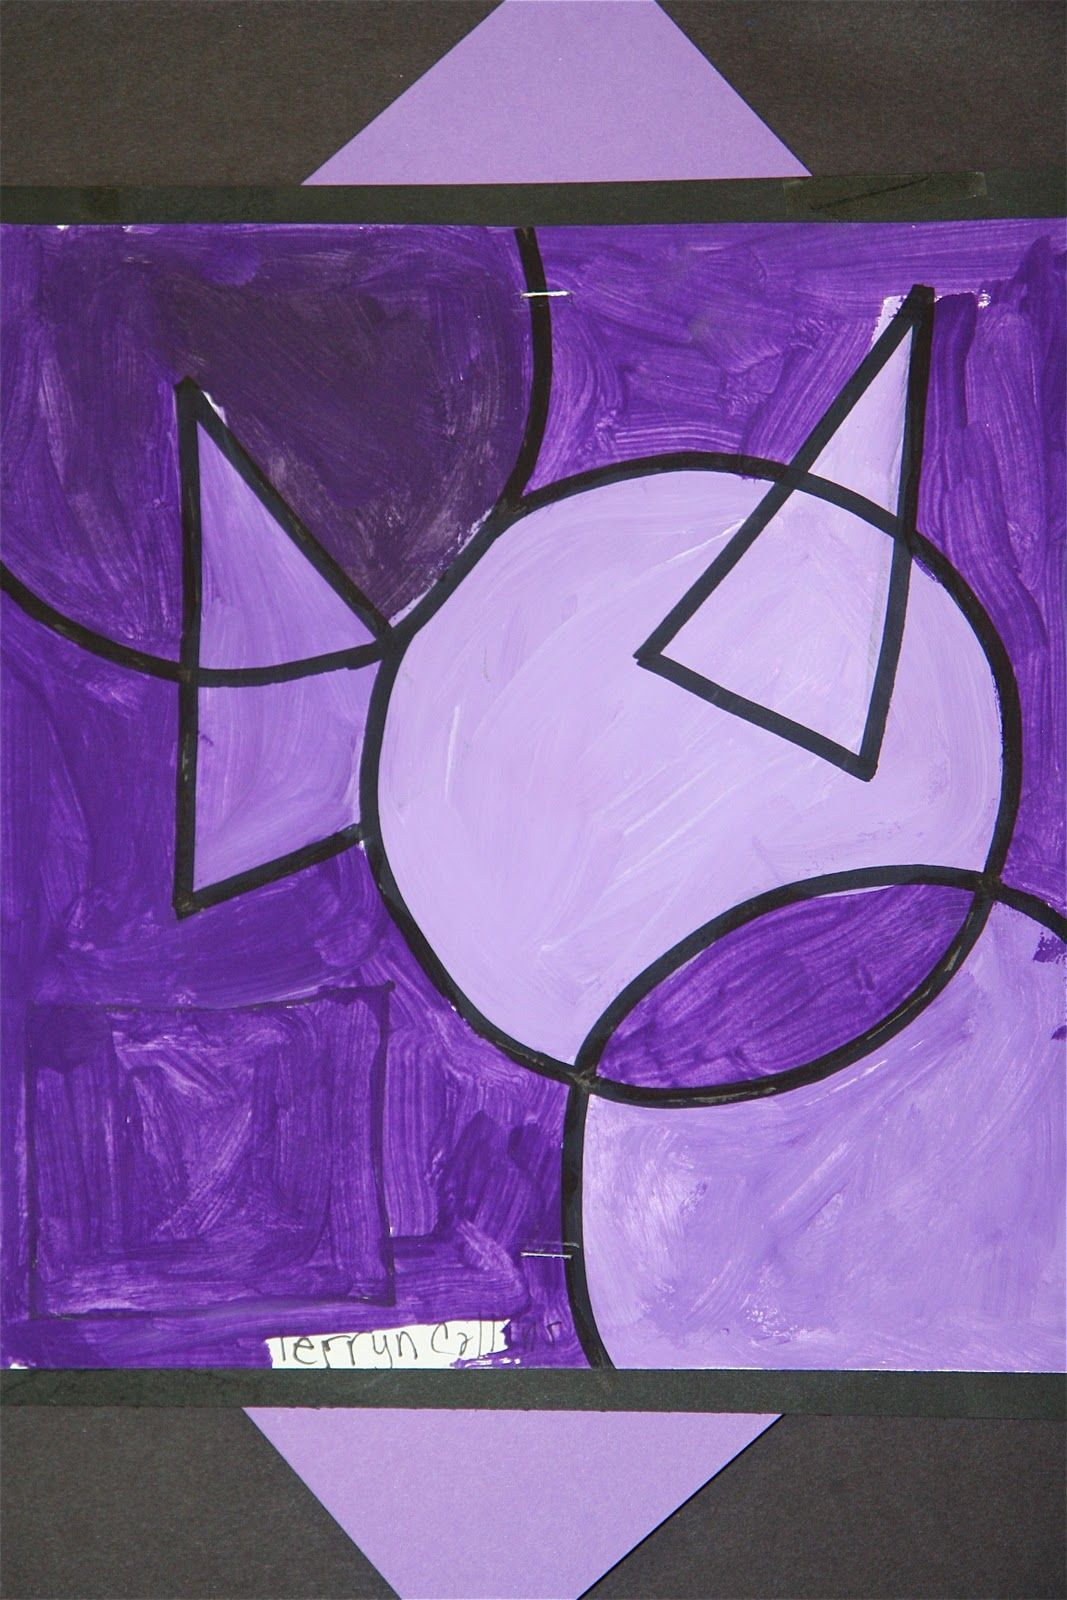 Monochromatic Paintings: 4th graders were studying the color wheel, mixing  colors & color theory